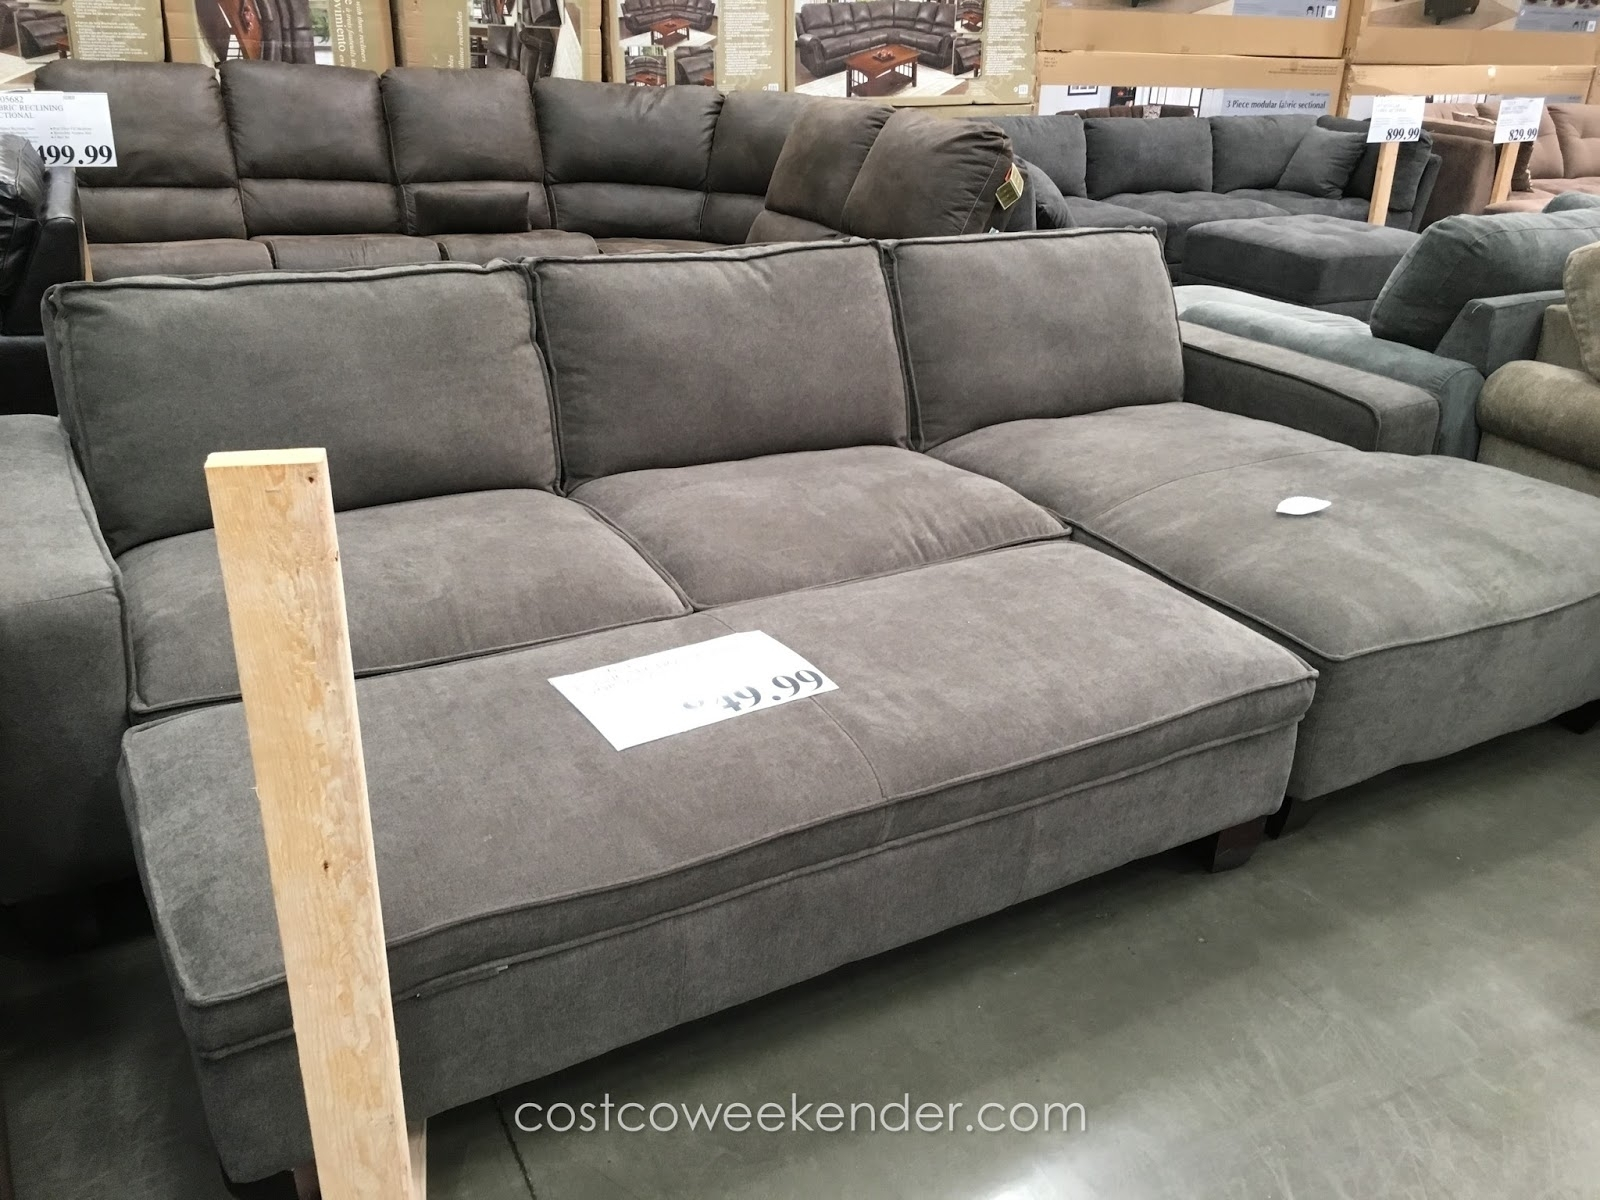 Sectional Ottoman | Tweetalk With Regard To Sofas With Chaise And Ottoman (View 5 of 10)